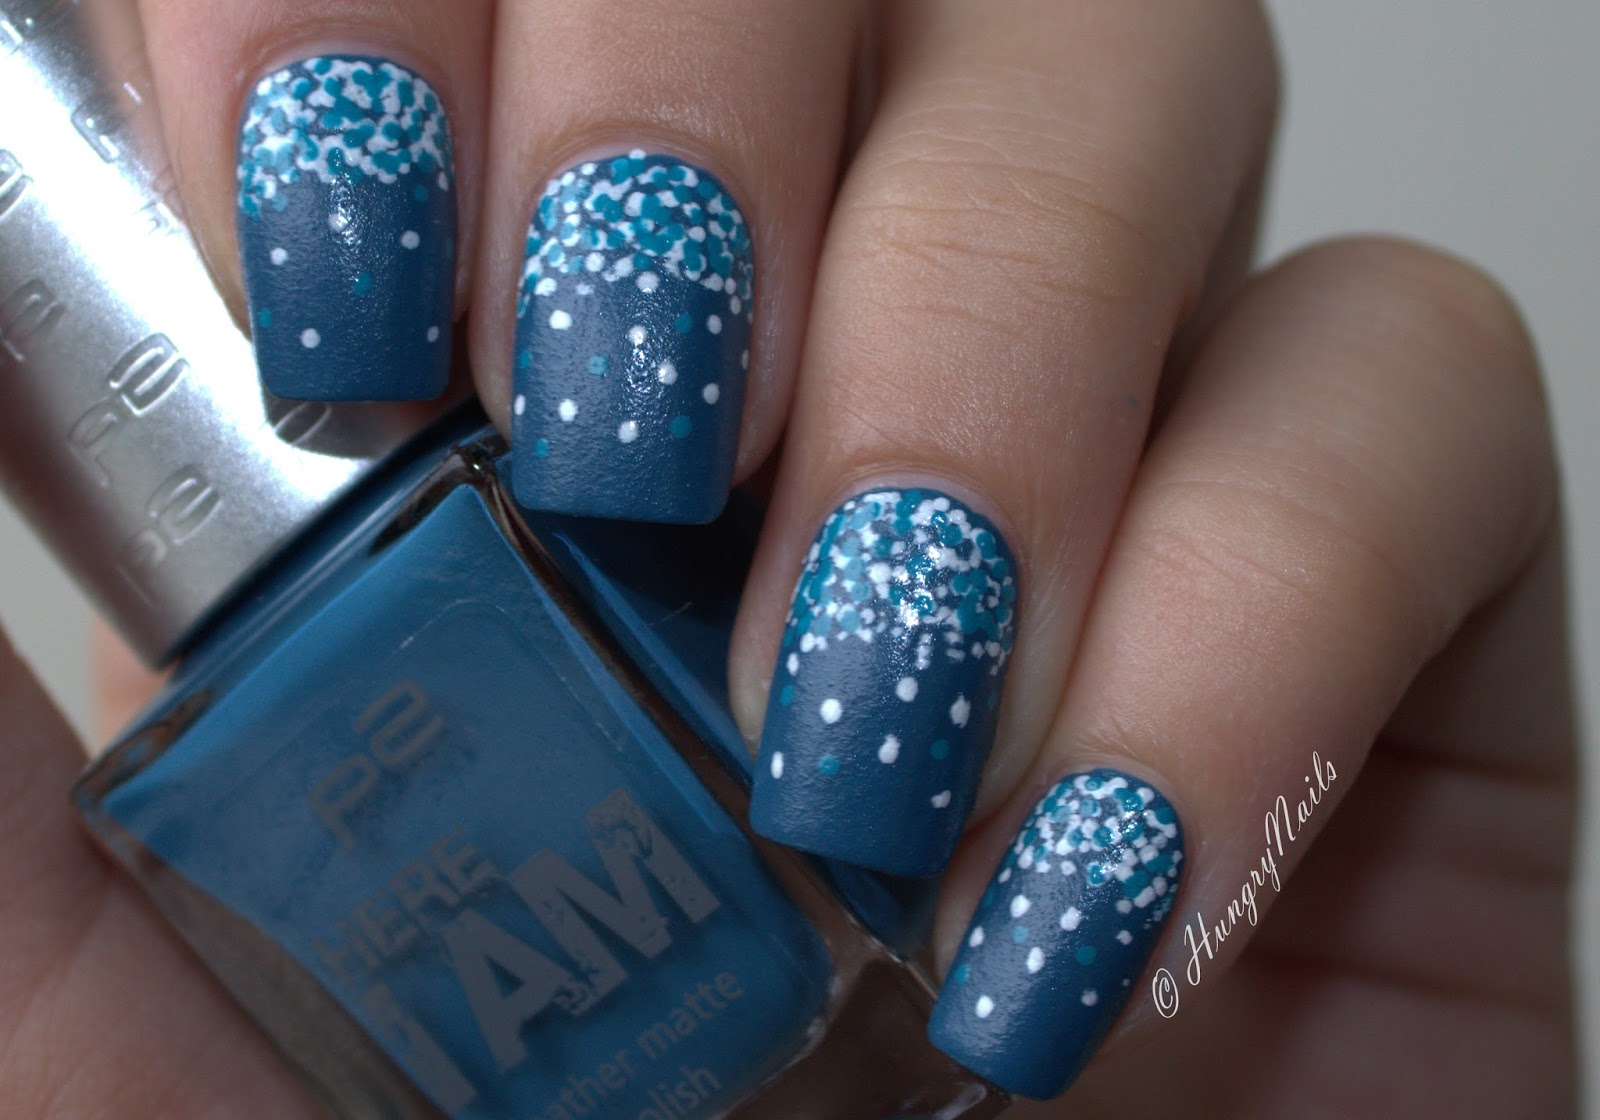 http://hungrynails.blogspot.de/2014/09/blue-friday-confetti-nails-mit-p2-here.html